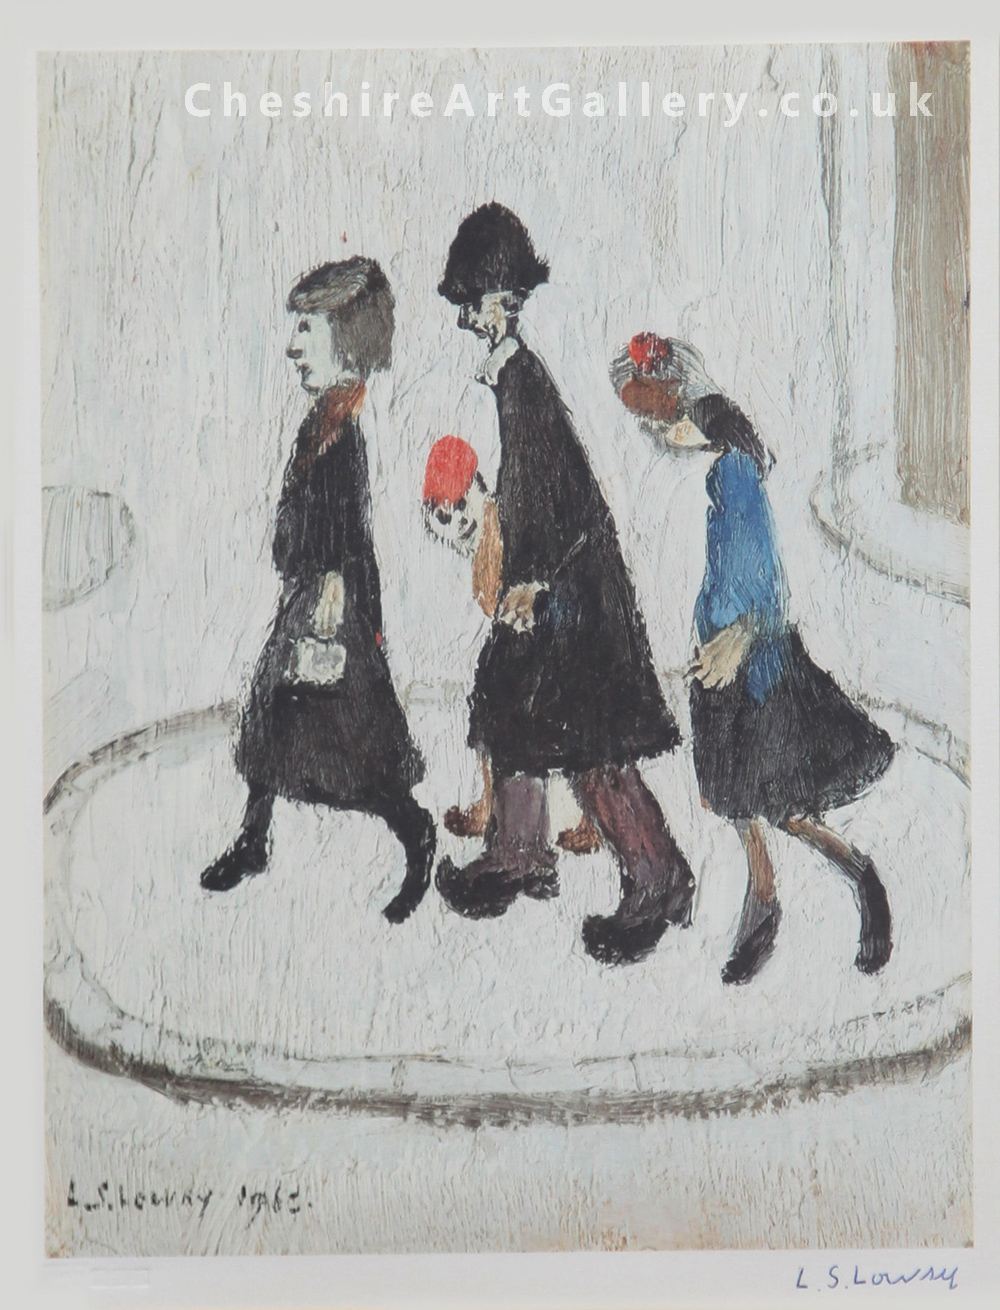 L S Lowry - The Family - Signed Limited Edition Print